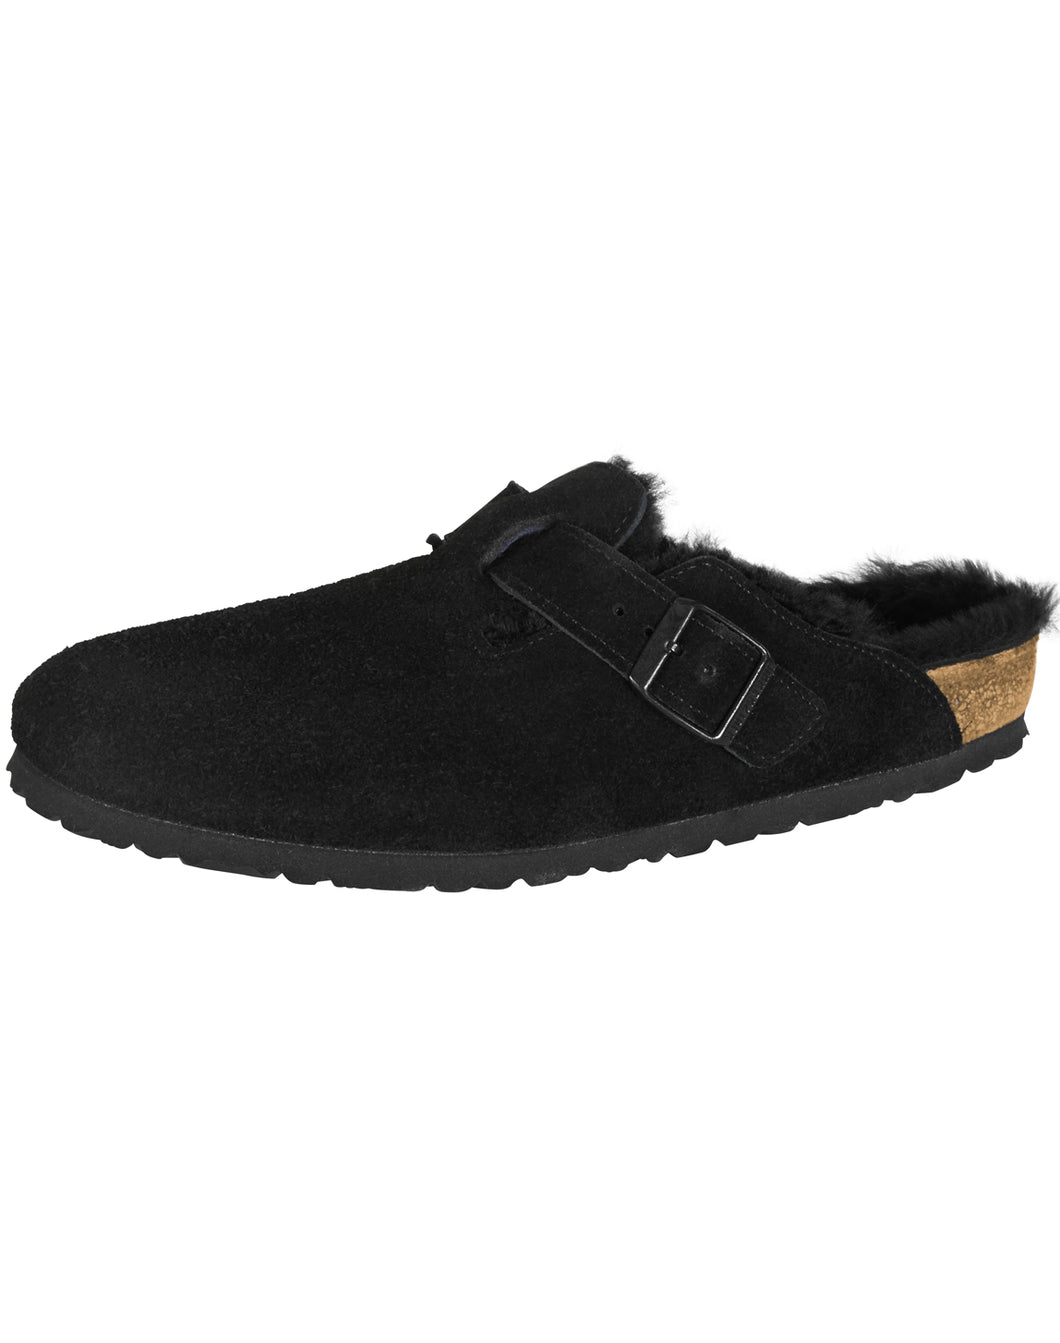 BIRKENSTOCK BOSTON BLACK SU SHEEPSKIN REGULAR